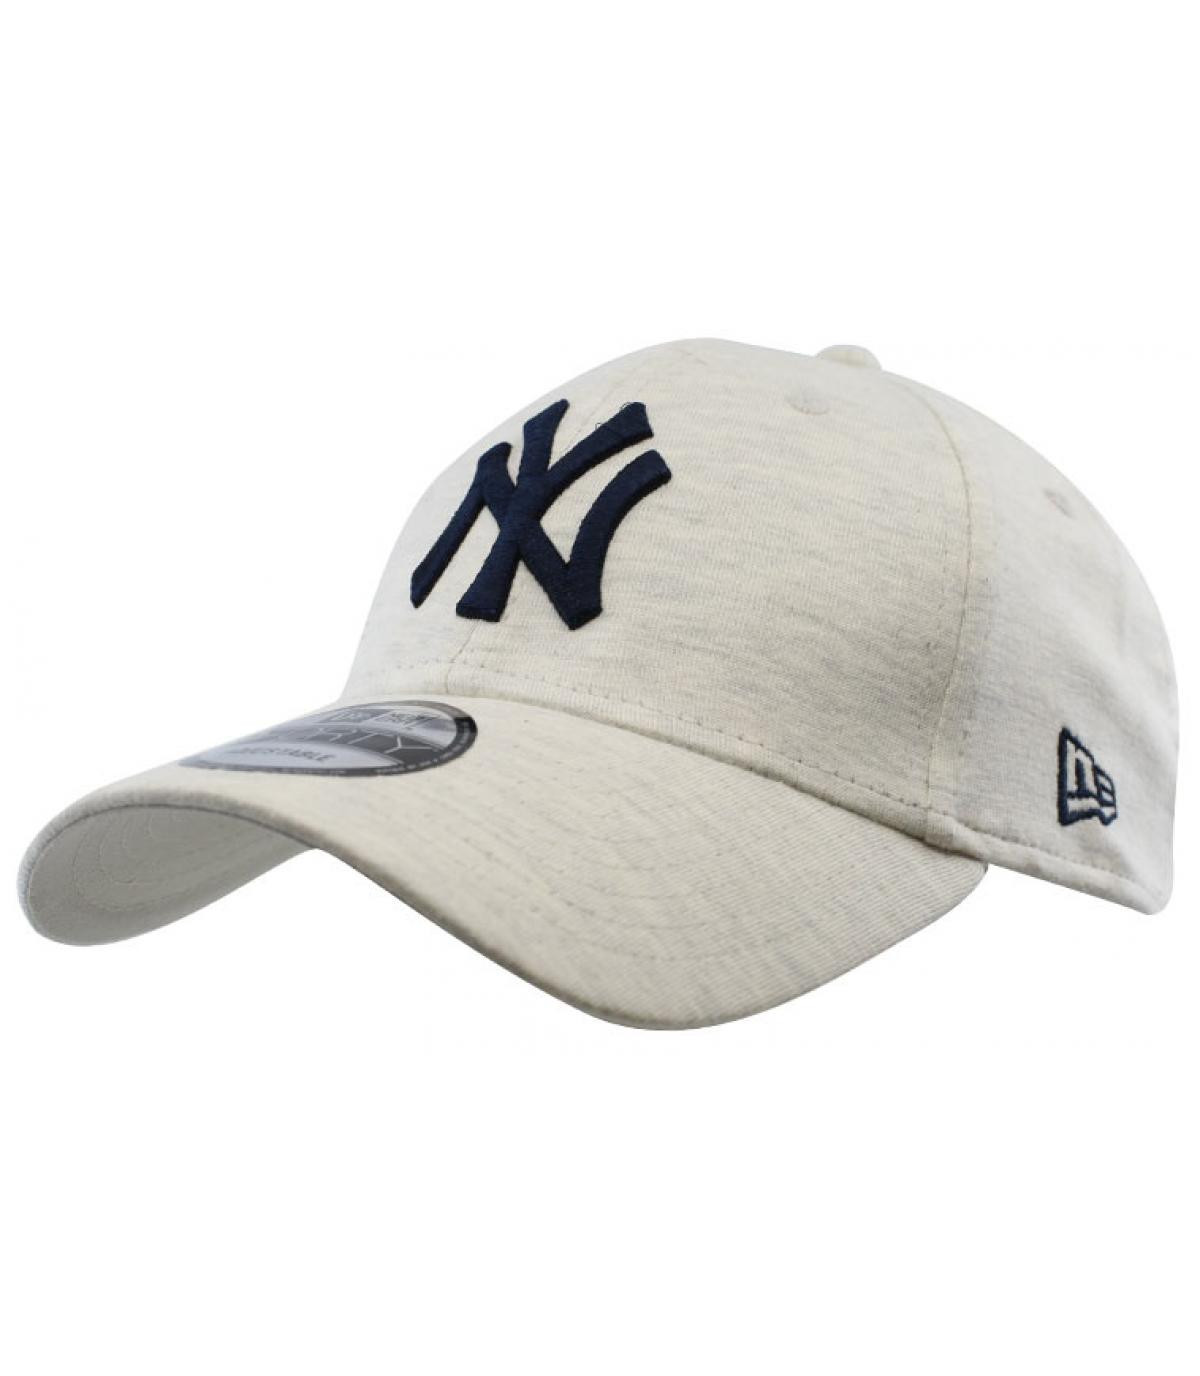 Détails Casquette Jersey Ess NY 940 white gray navy - image 2